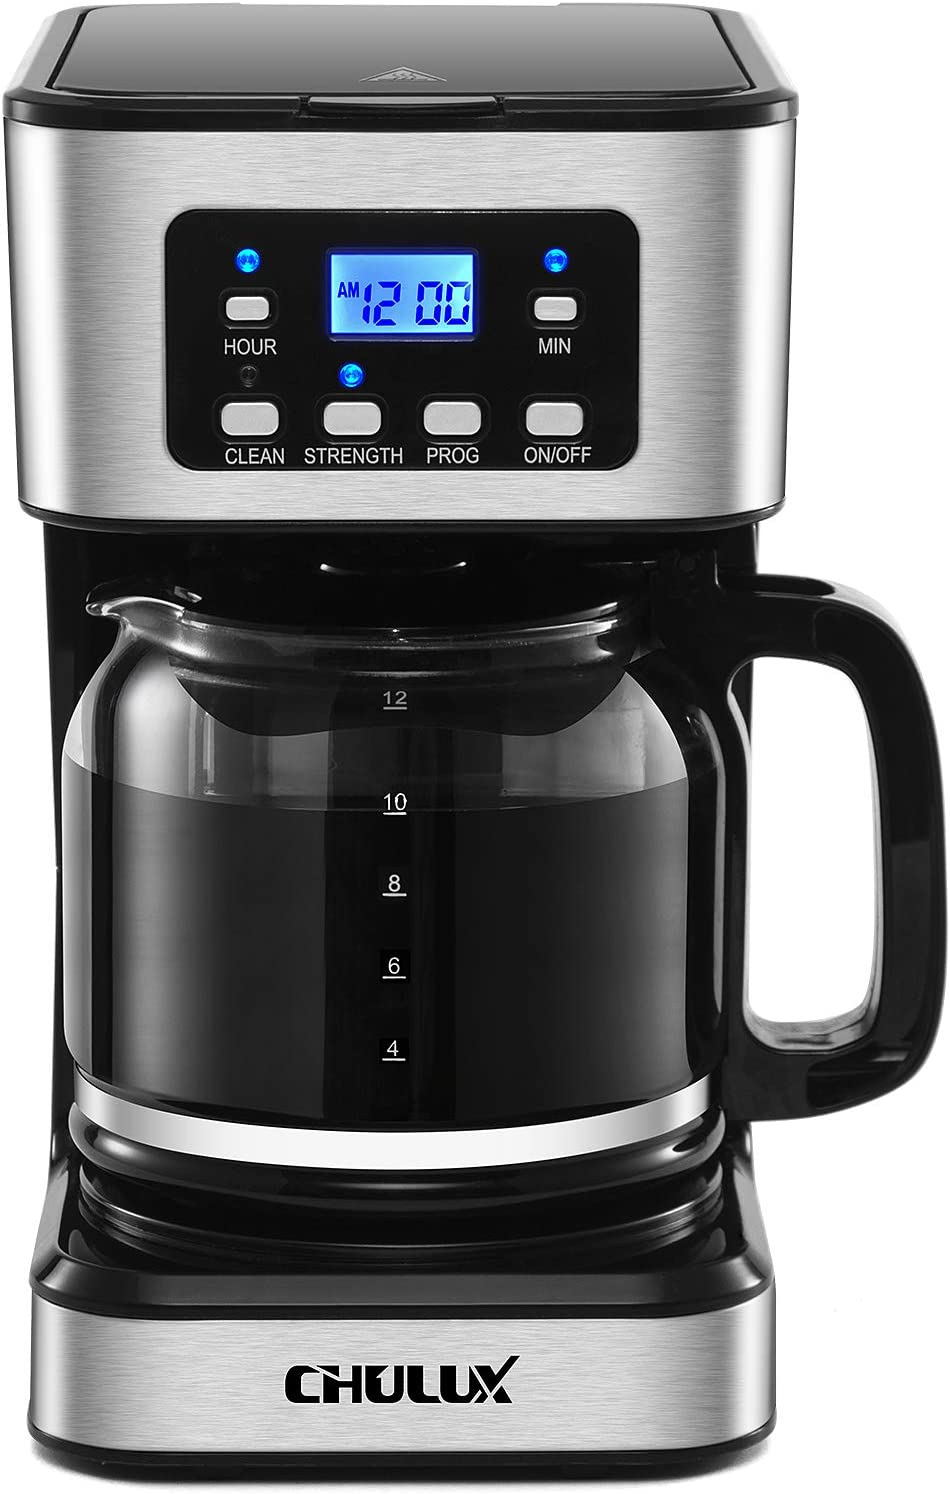 CHULUX 24-Hour Programmable Drip Coffee Machine with LCD Screen and 12 Cup(60 OZ )Glass Carafe,Brew Strength Control,2-Hour Keep Warm,Auto Brew and Shut Off,Washable Coffee Filter and Spoon,950 Watts